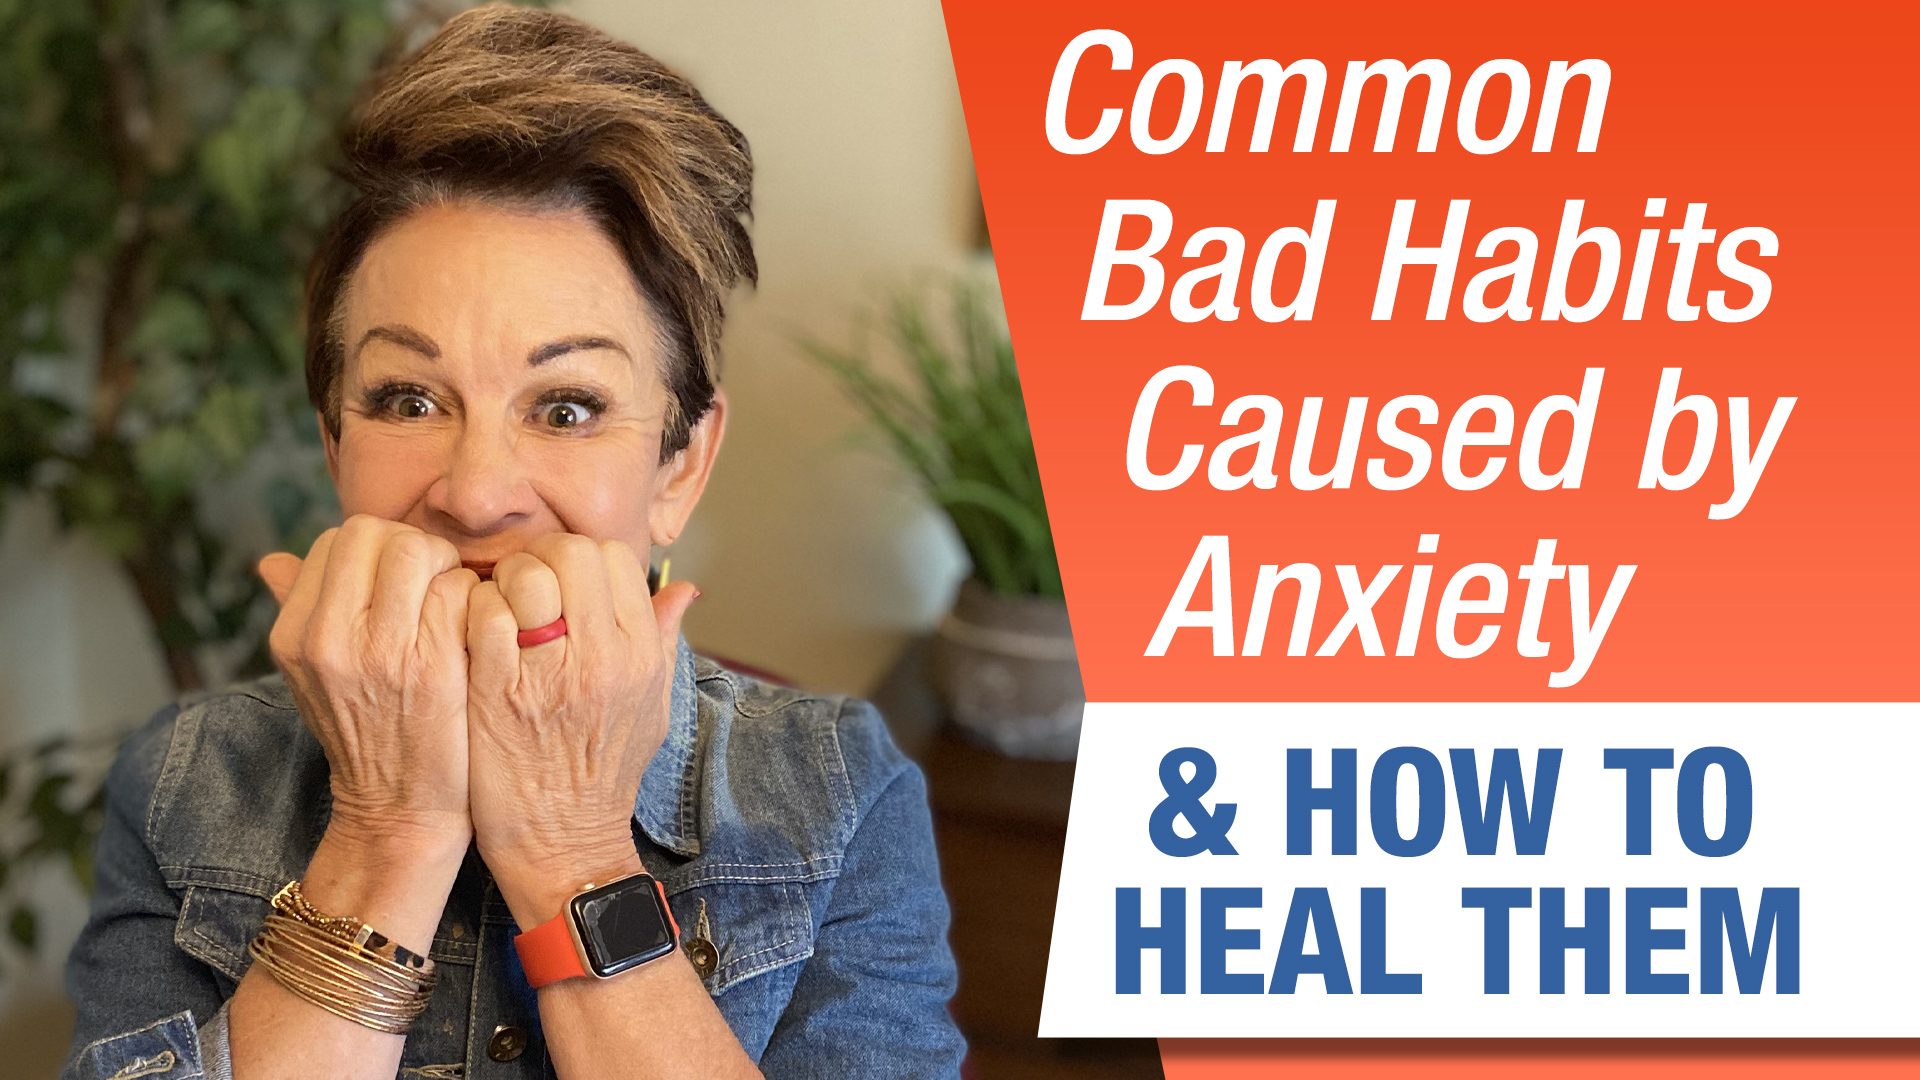 How To Break Bad Habits Caused By Anxiety